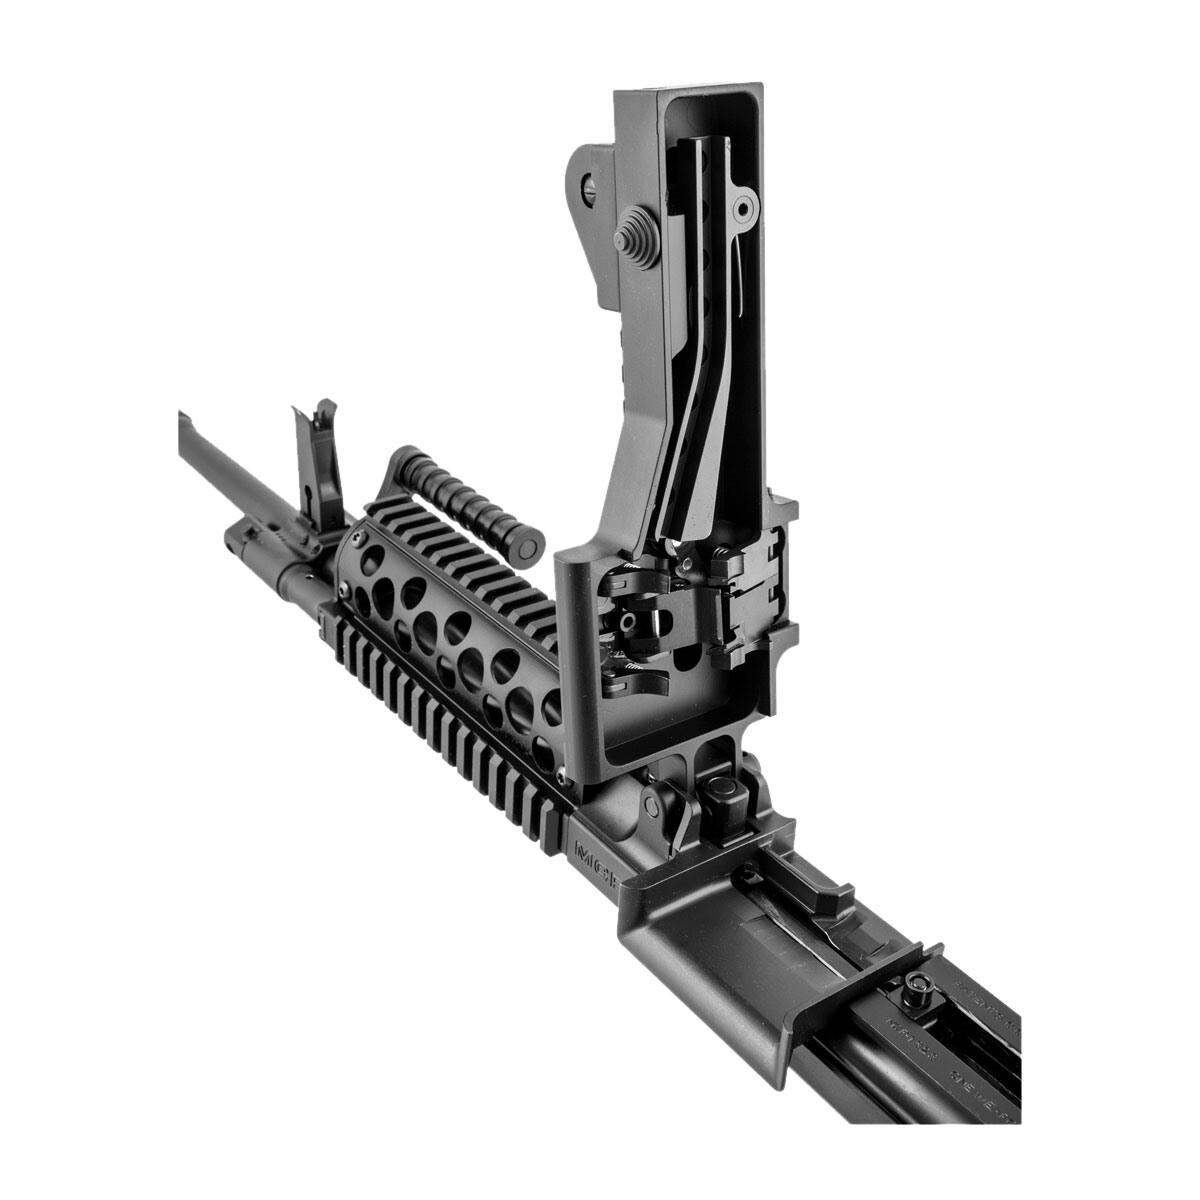 Fightlite Industries - MCR-060 Belt-FED 5.56 Upper Receiver Full Auto